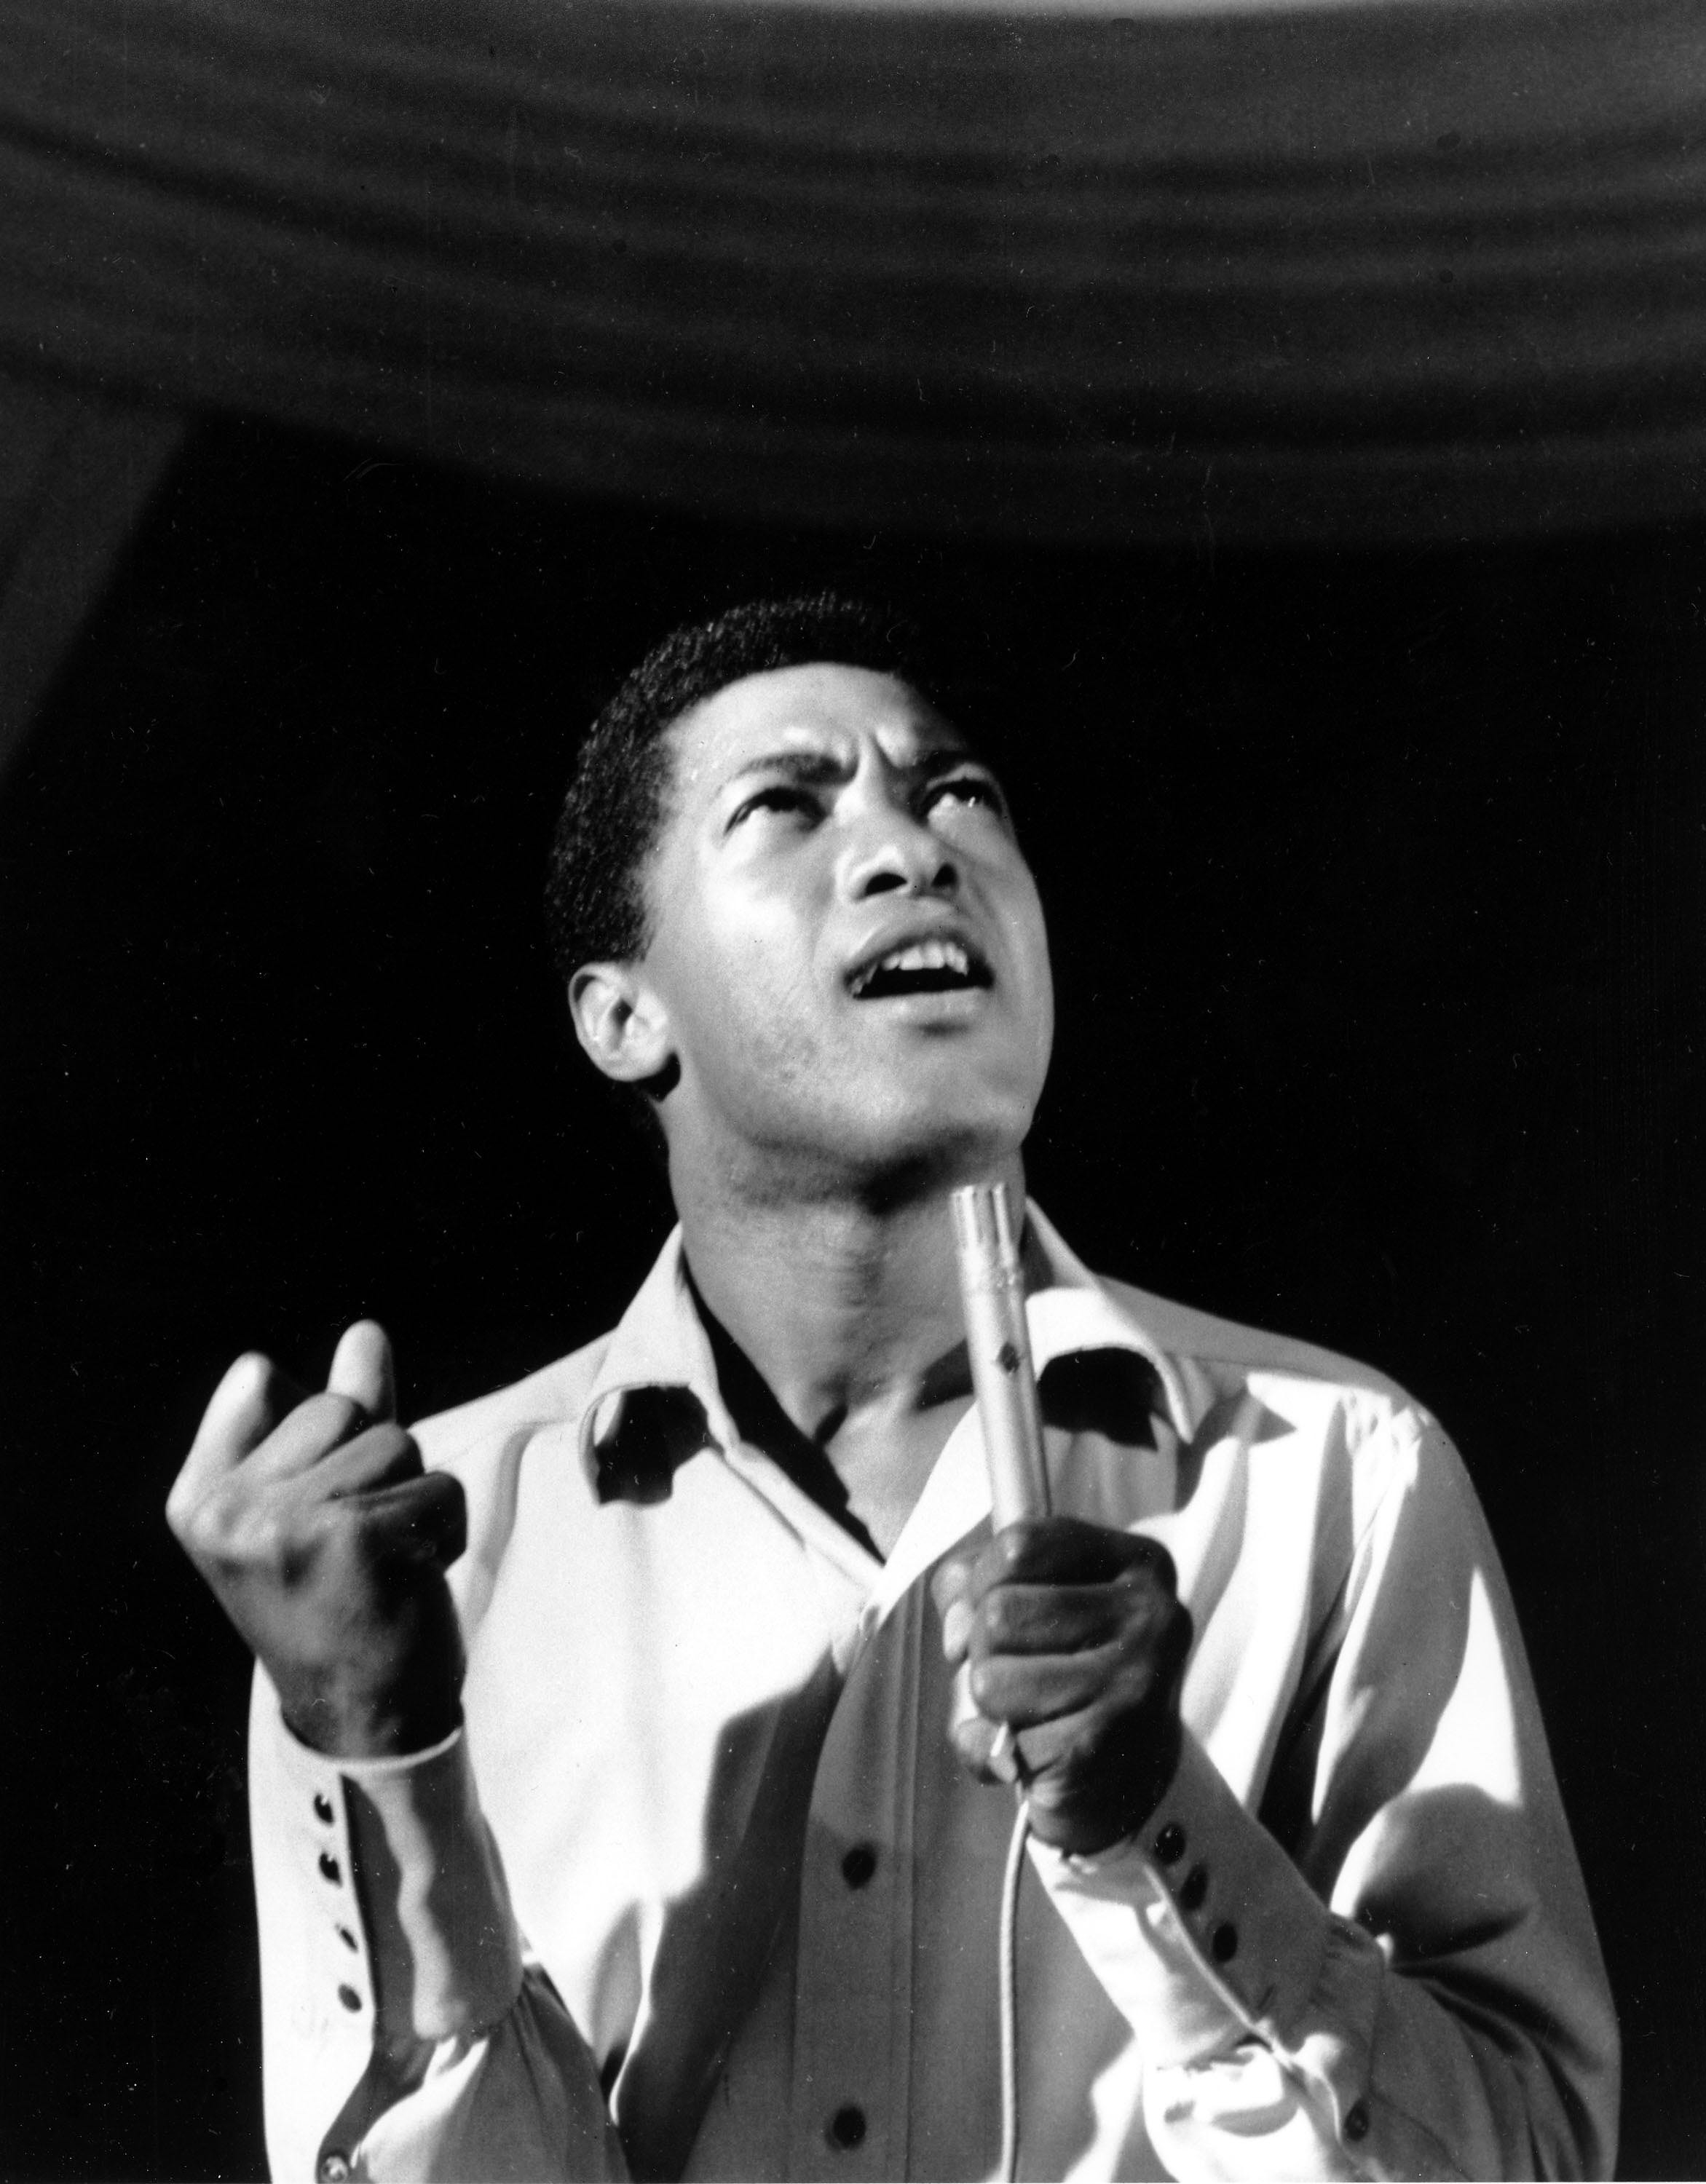 Singer Sam Cooke performs at a concert in New York's Copacabana night club in this undated photo.  (AP Photo) ORG XMIT: APHS141 [Via MerlinFTP Drop]